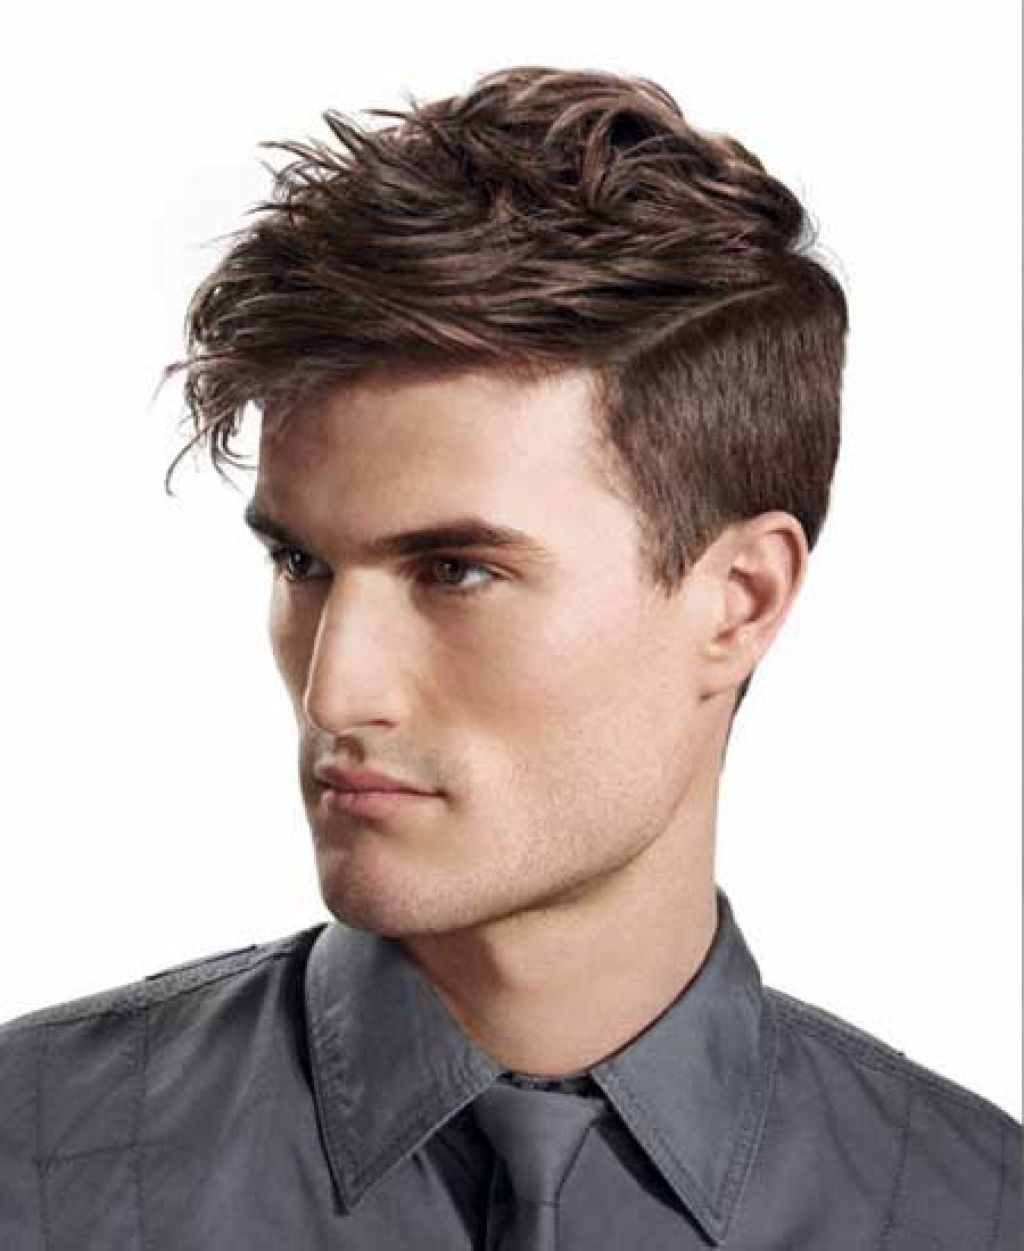 Tremendous 1000 Images About Hairstyles For Boys And Men On Pinterest Mens Short Hairstyles For Black Women Fulllsitofus